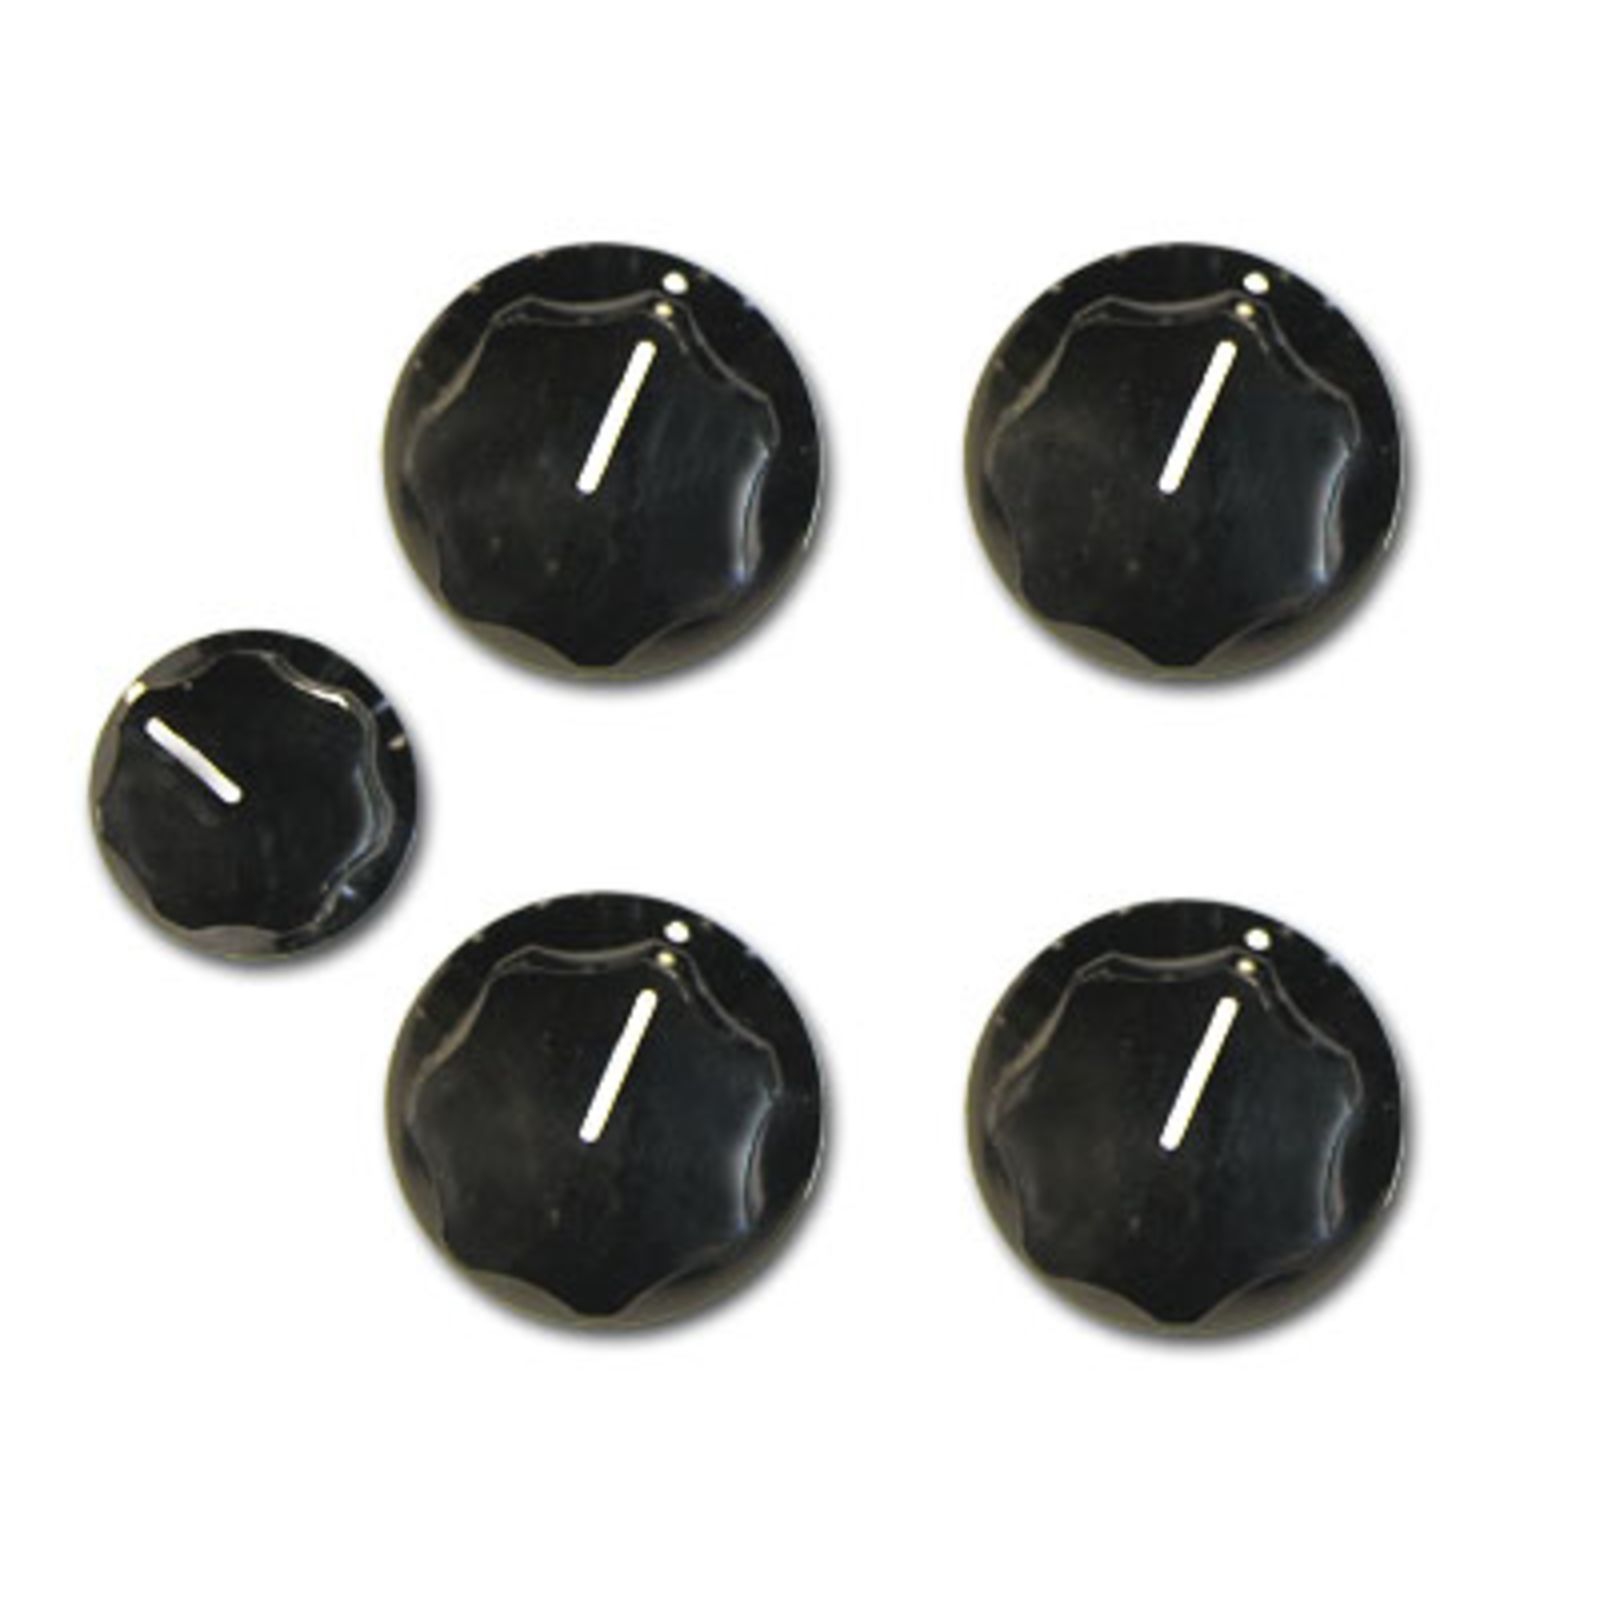 Rickenbacker Knobs Vintage Black Set of 5 Produktbild